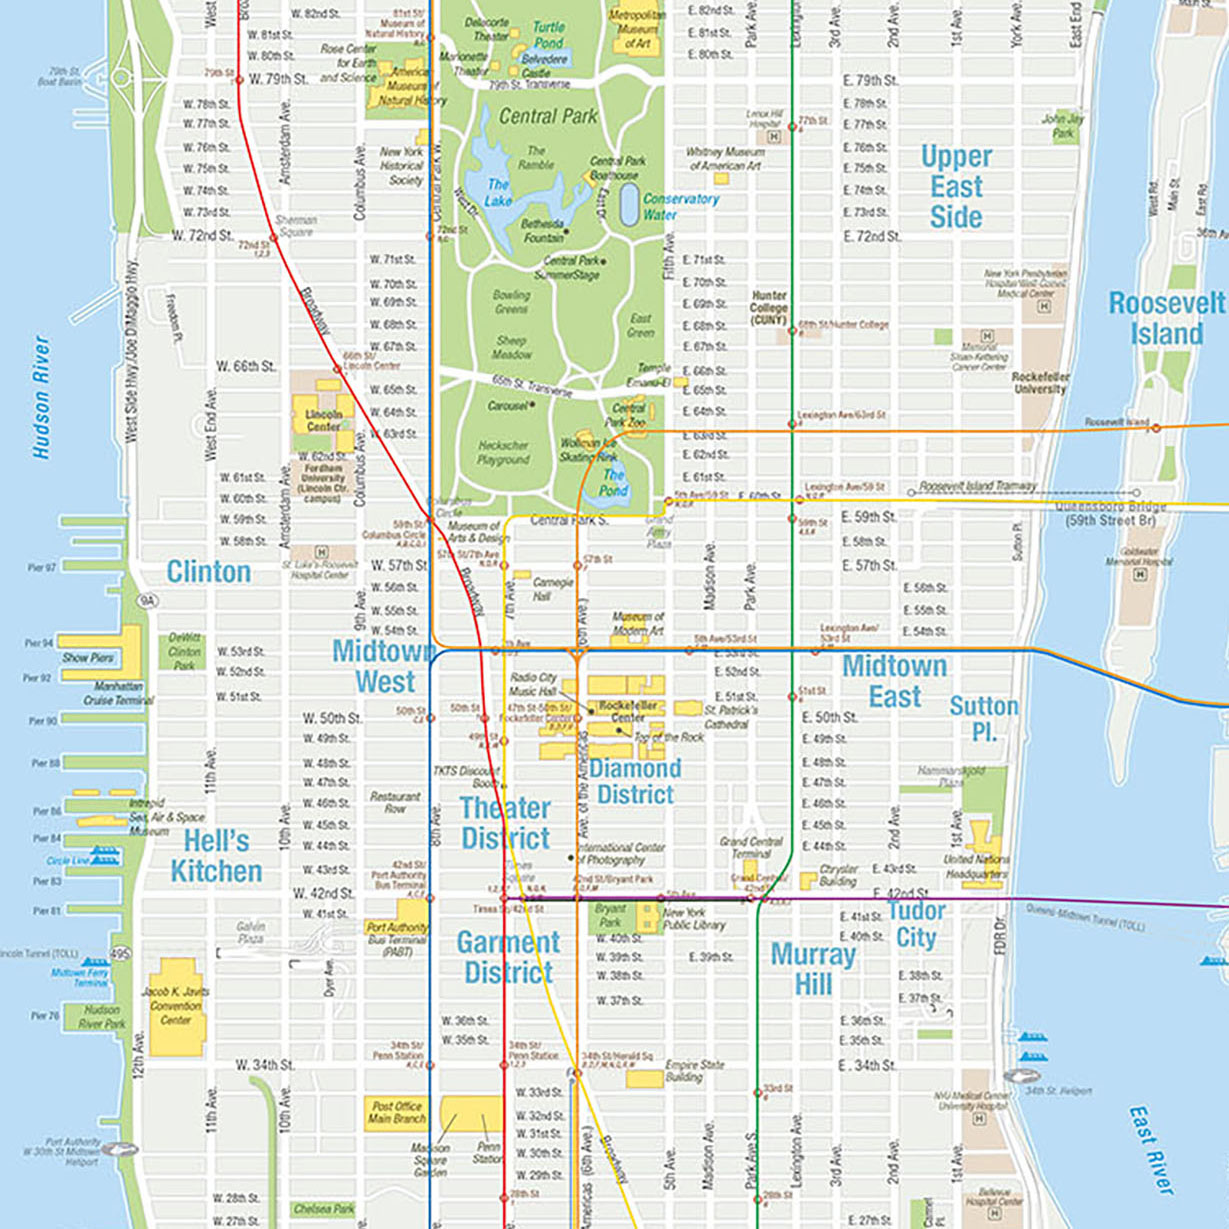 Click image to view a portfolio of maps created for the NYCVB and other travel-related projects.  Map copyright © David Lindroth Inc.